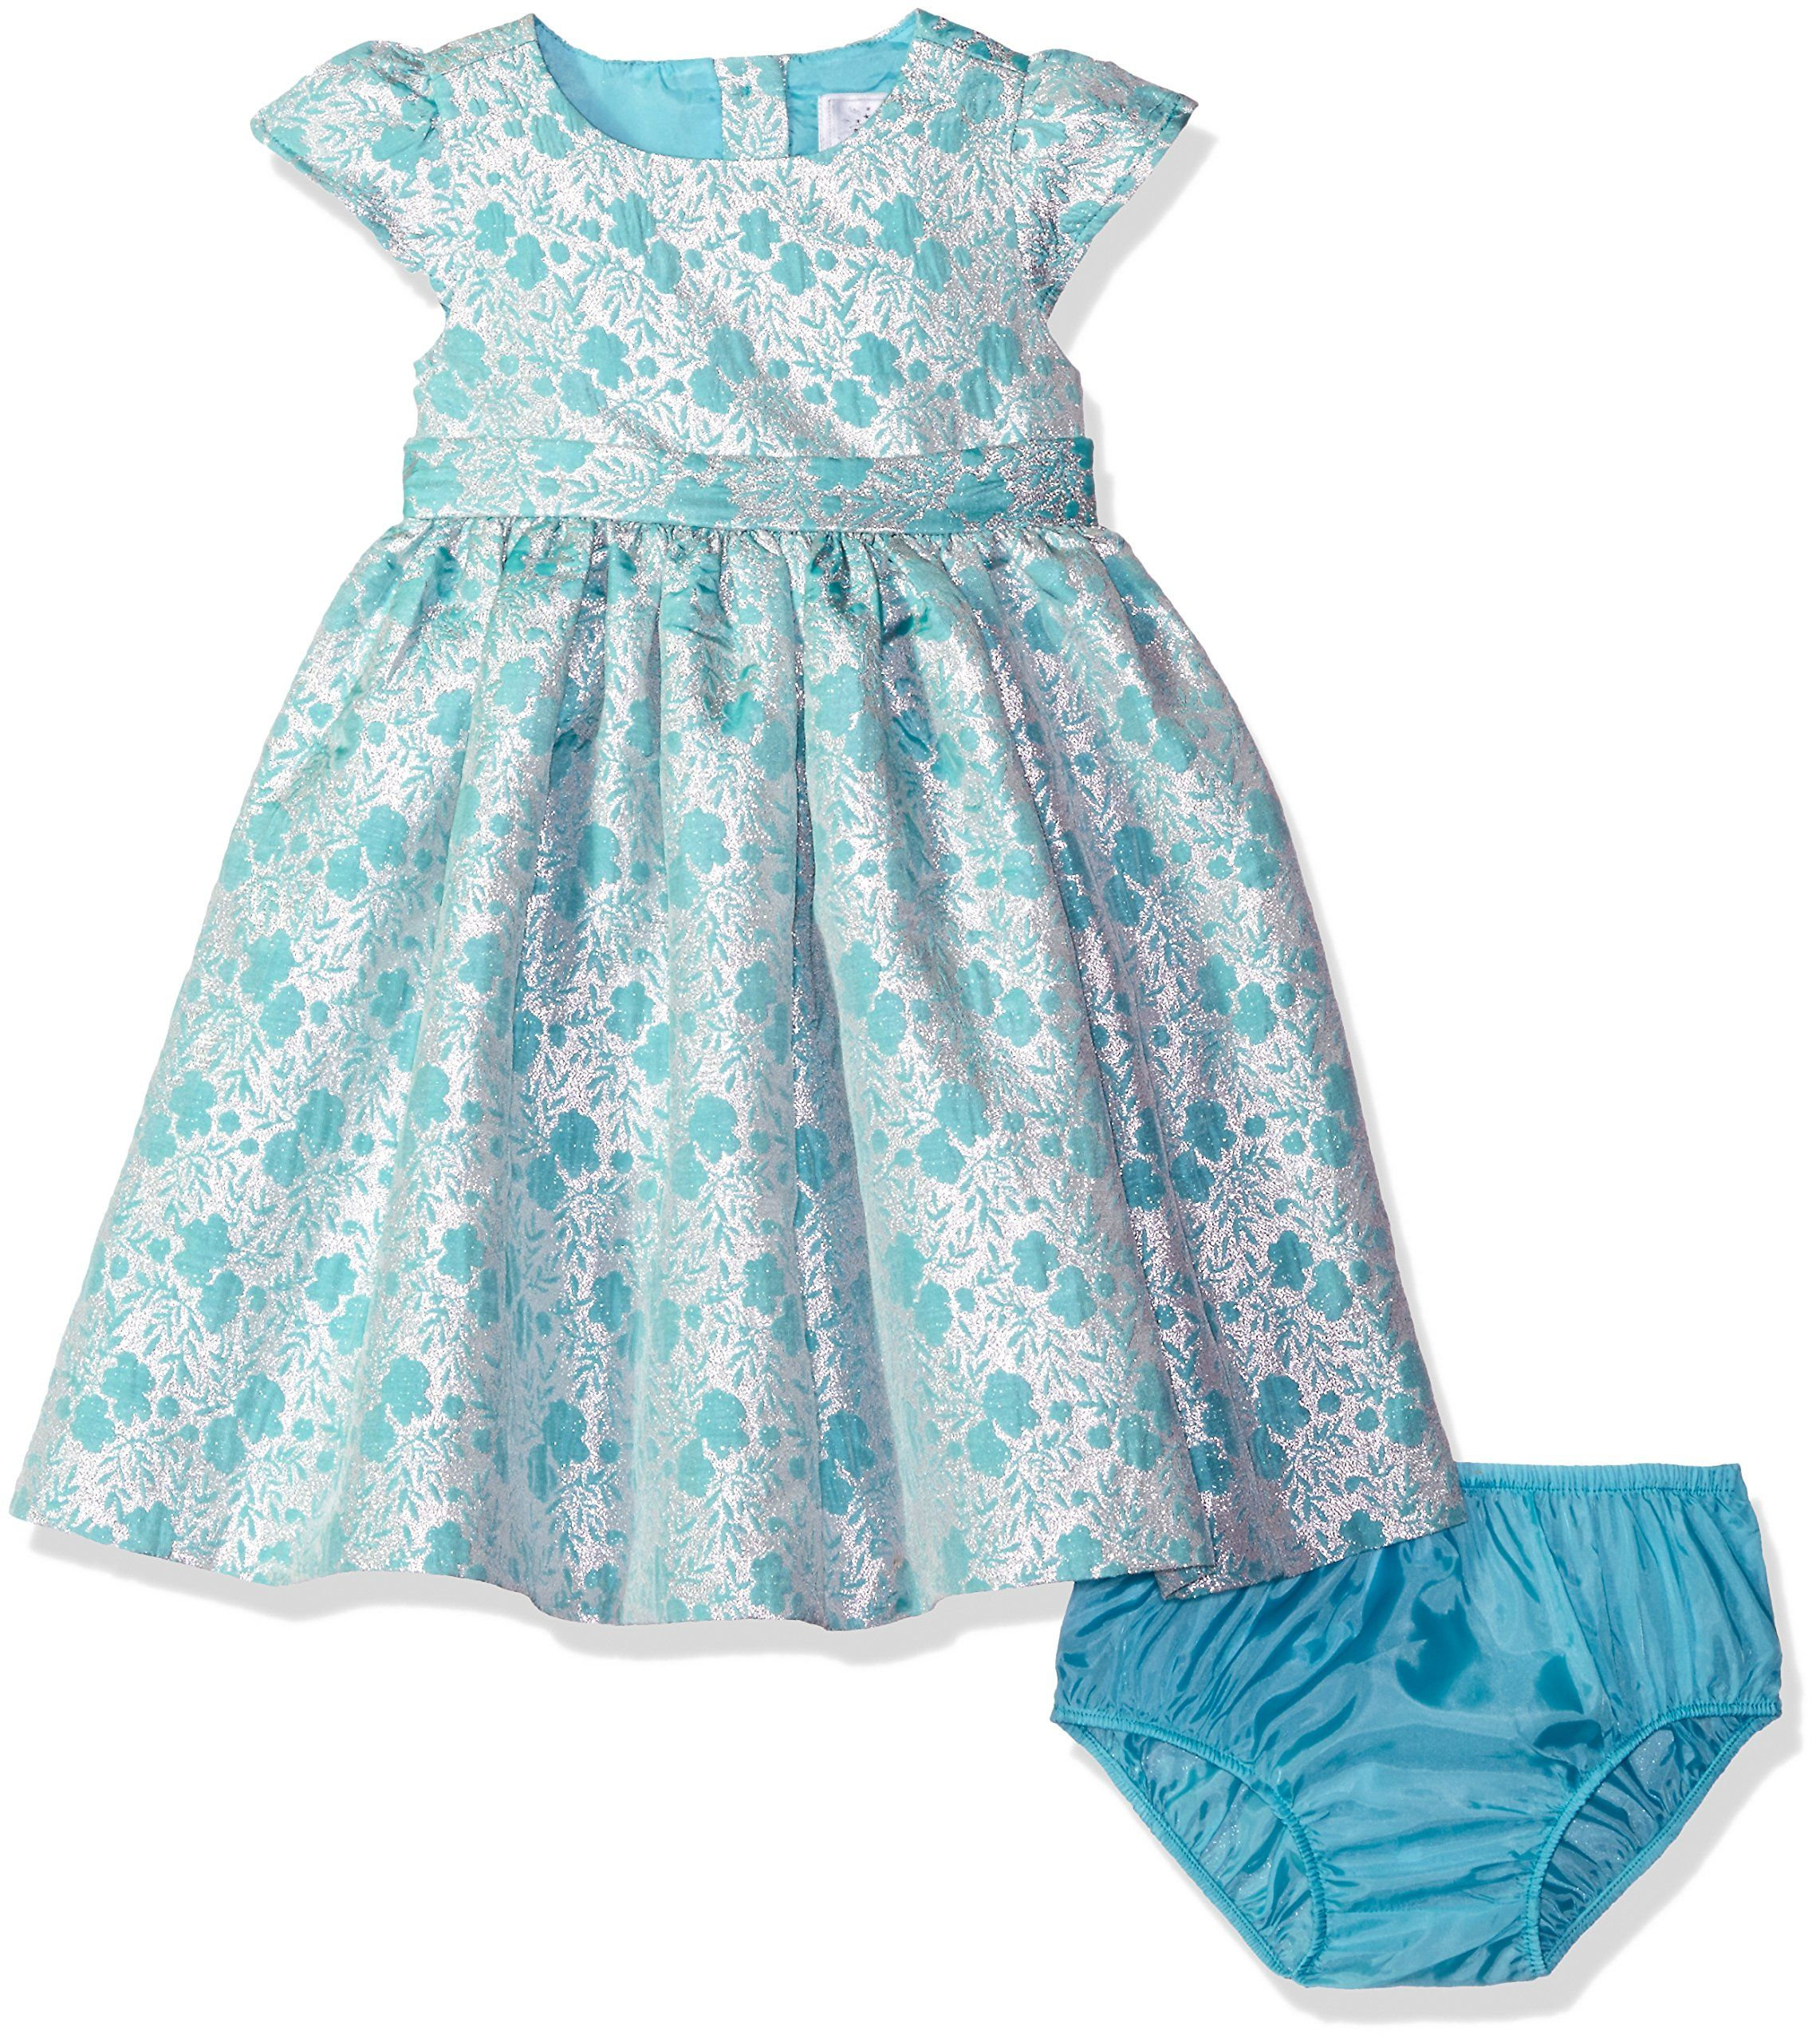 Gymboree Toddler Girls Mint And Silver Floral Jacquard Dress Multi 3t Empire Waist Detail Back Bow Detail Jacquard Dress Dresses Toddler Girl [ 2560 x 2282 Pixel ]